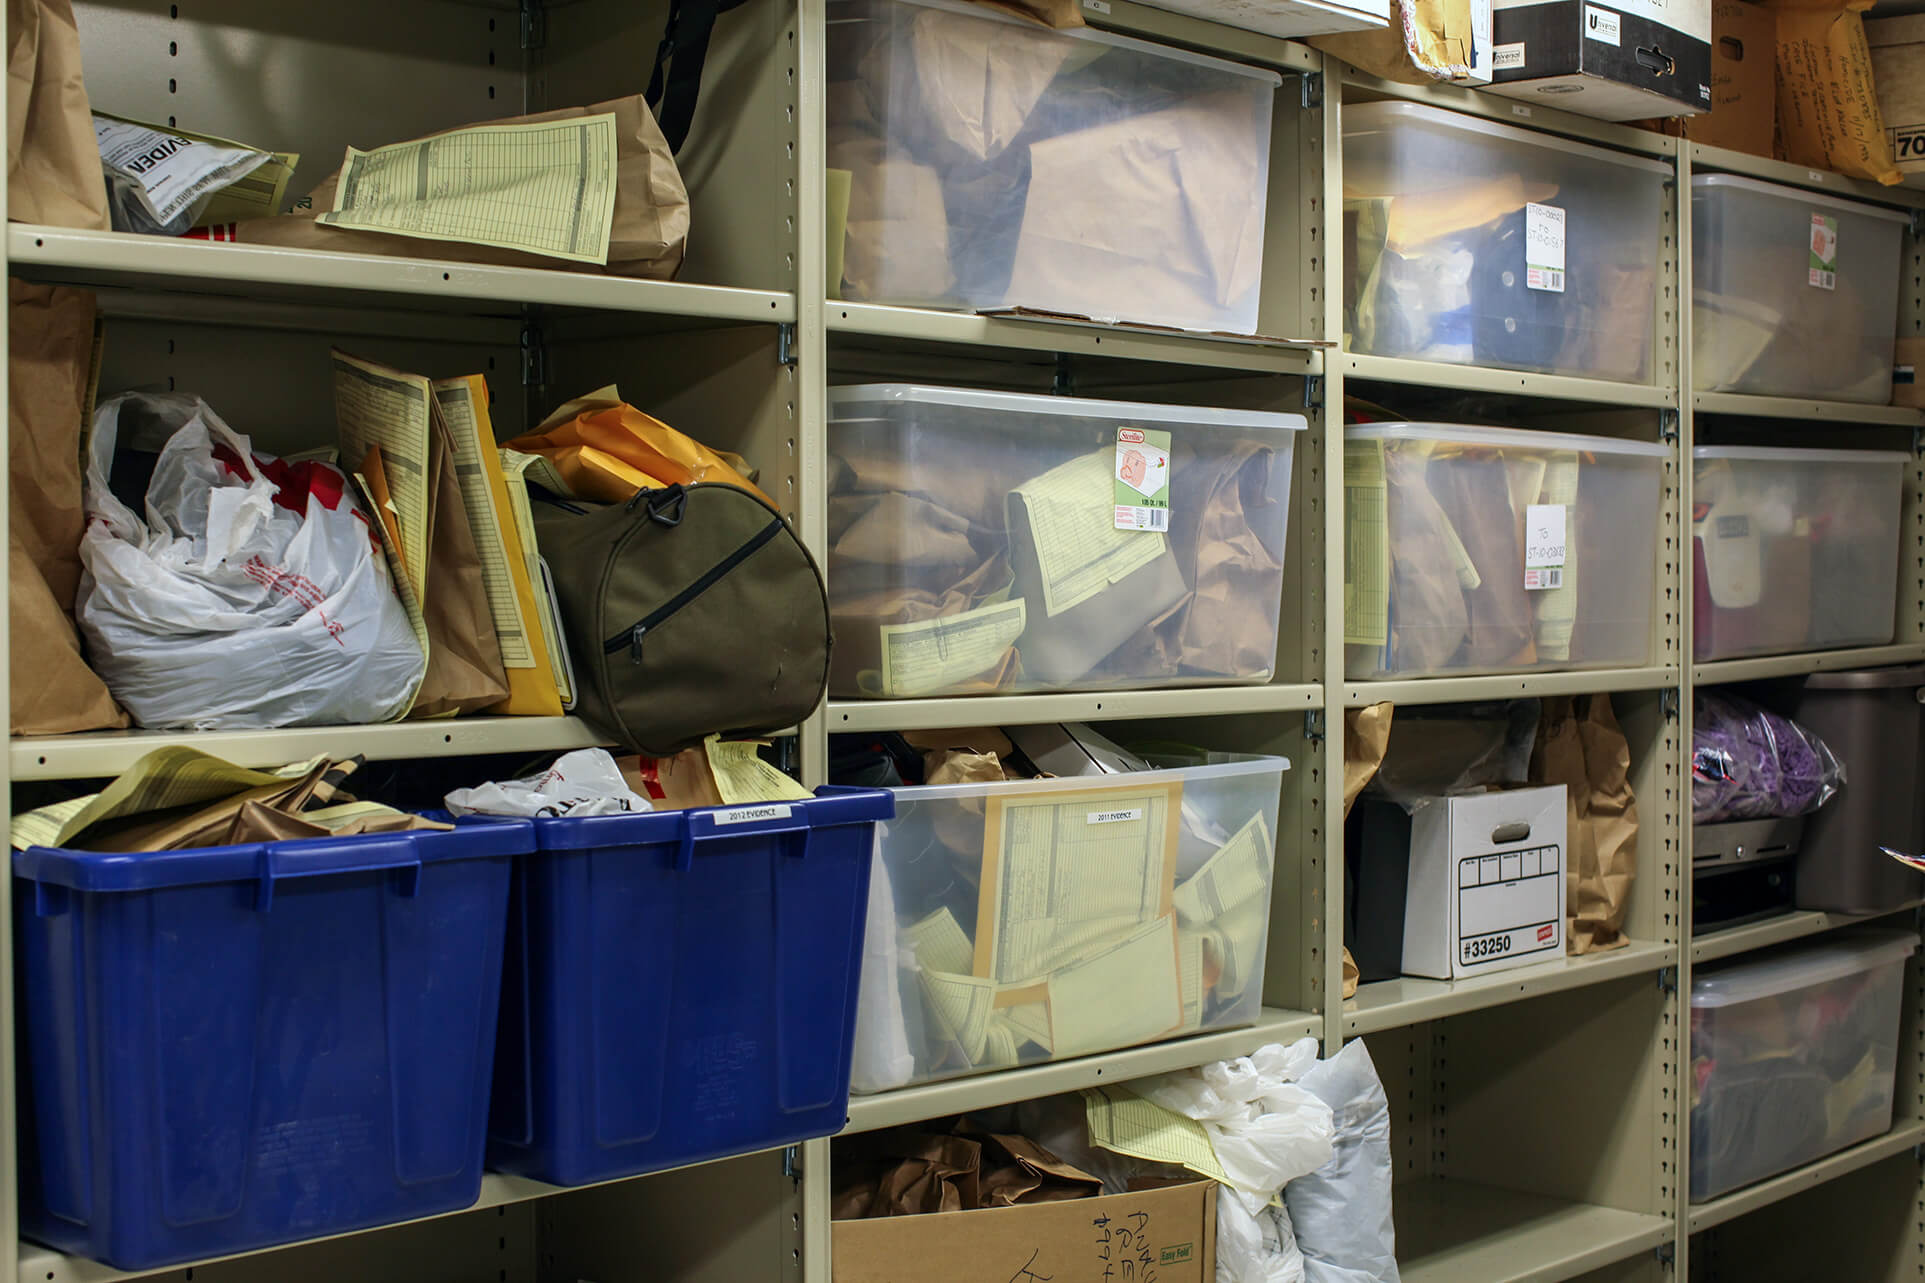 Long-Term Evidence storage at Salisbury Township Police Department